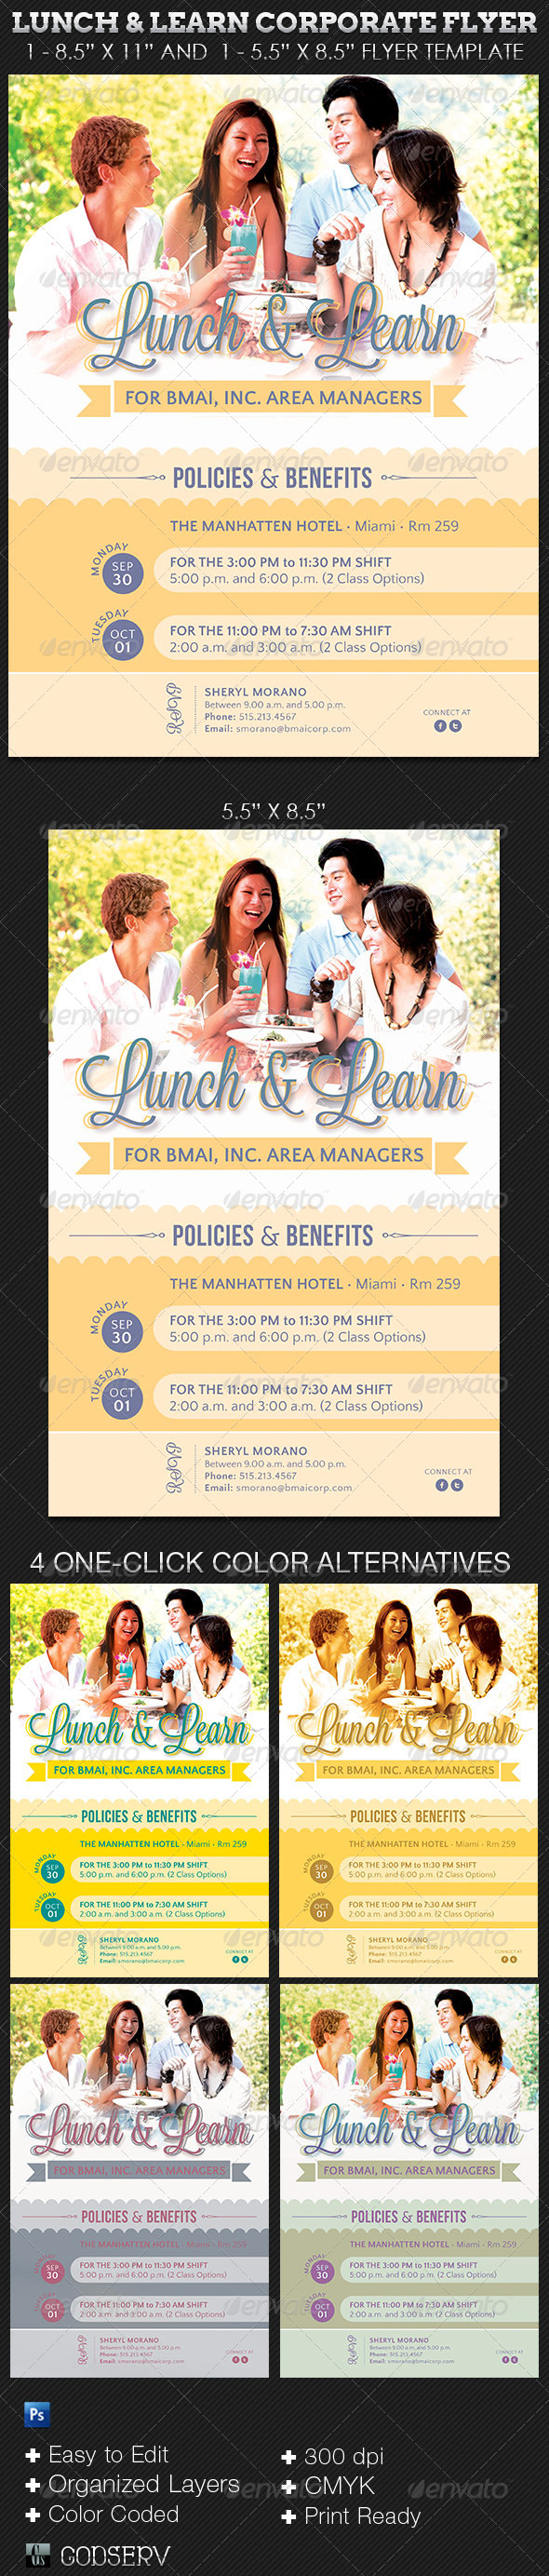 Lunch and Learn Corporate Flyer Template - Corporate Flyers